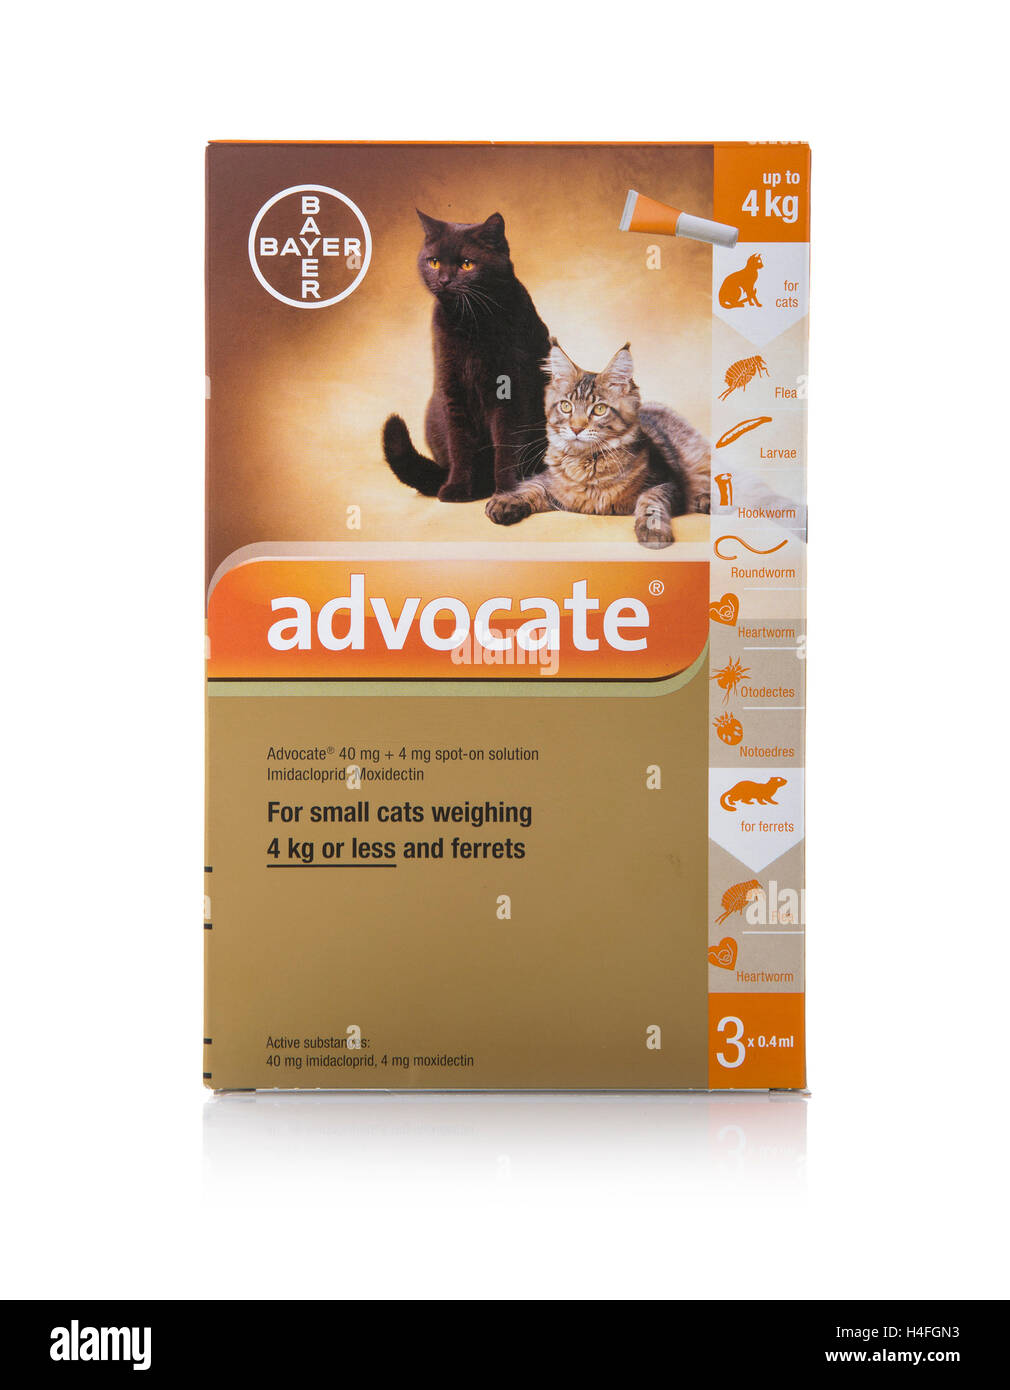 advocate cat flea treatment instructions